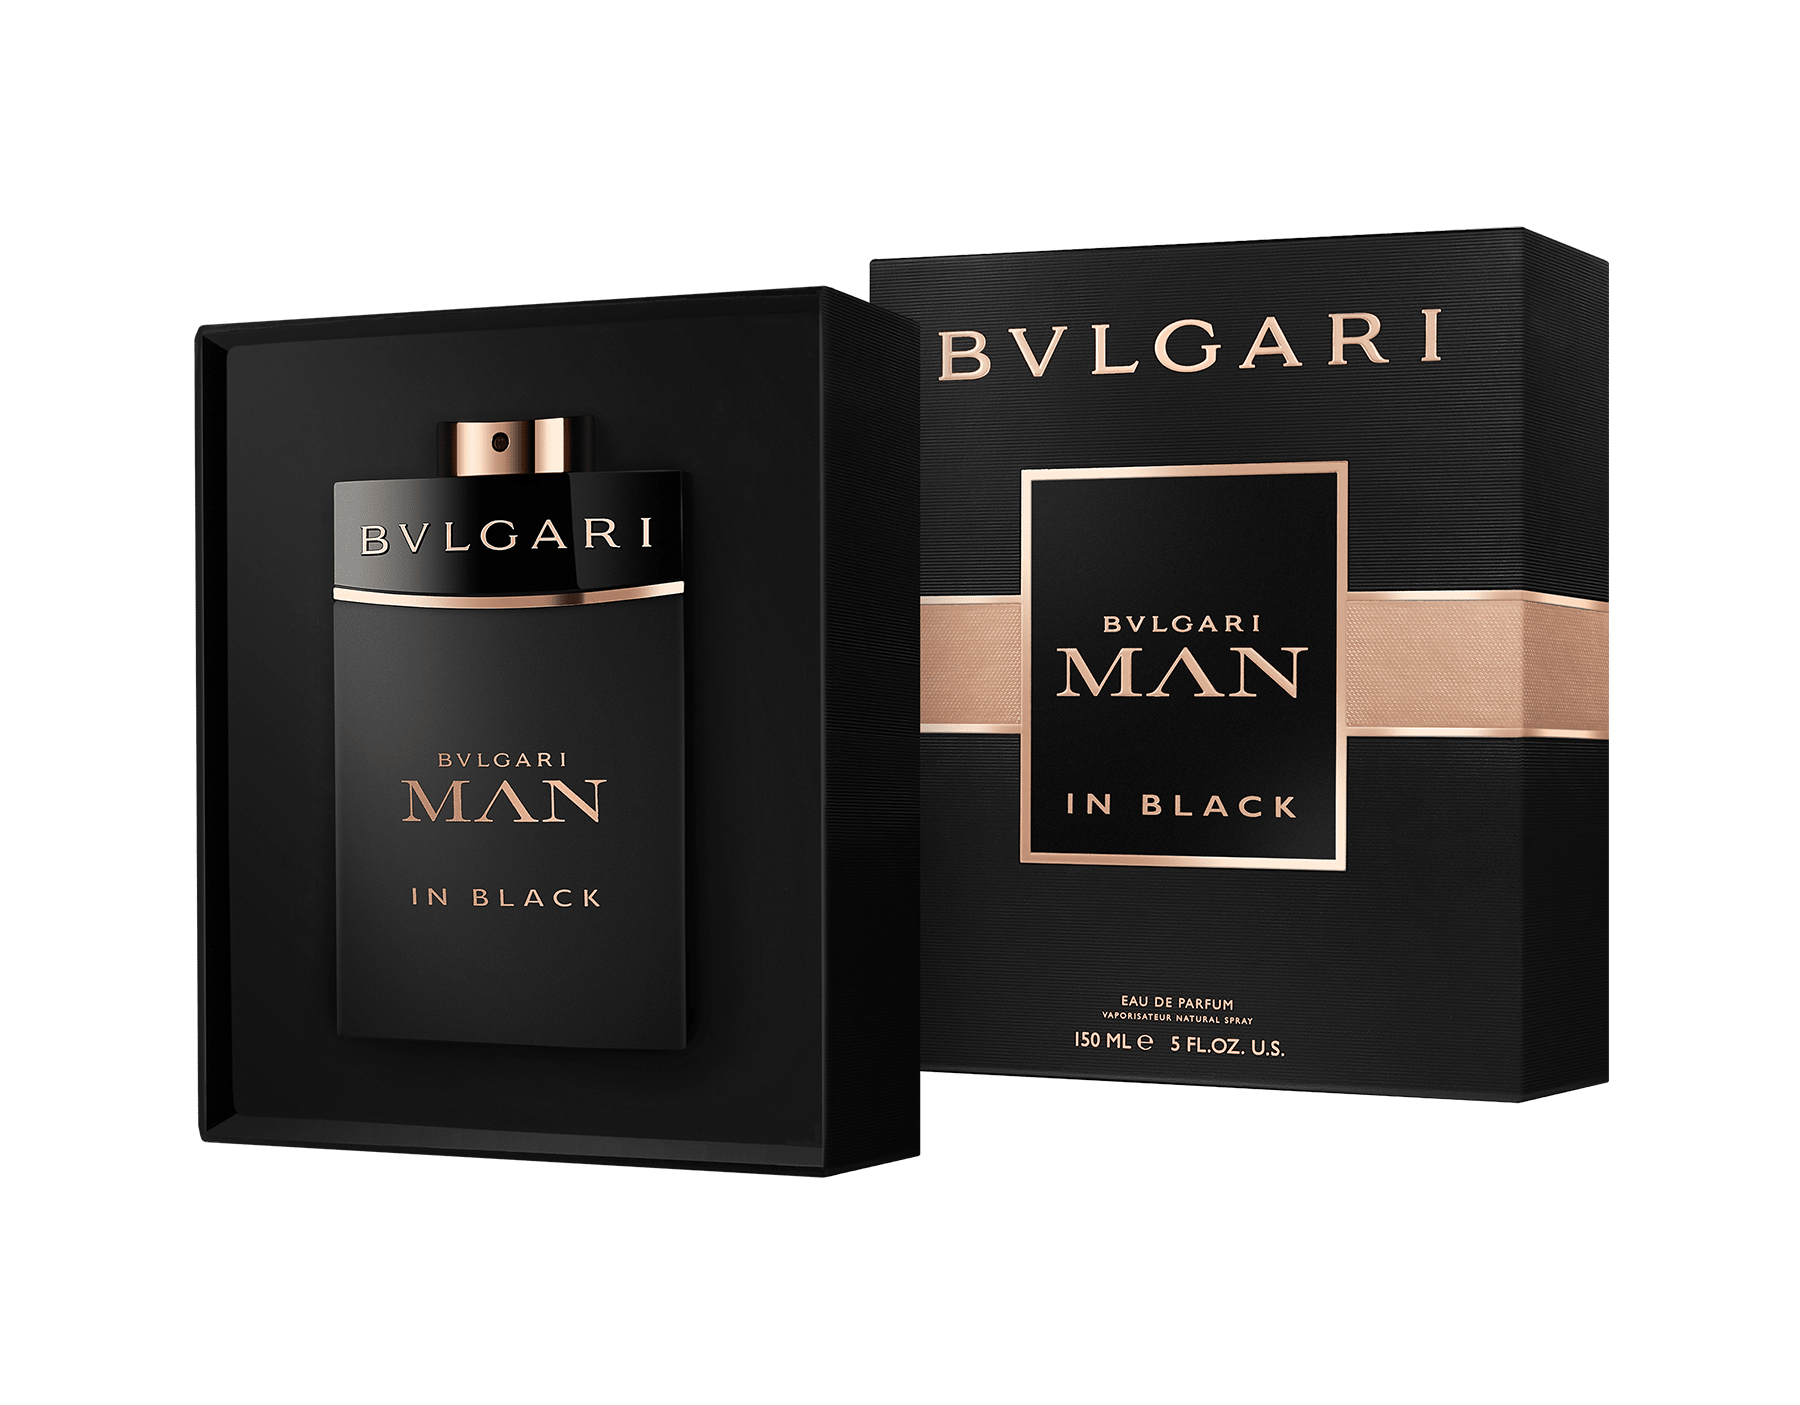 bvlgari man in black perfume shop